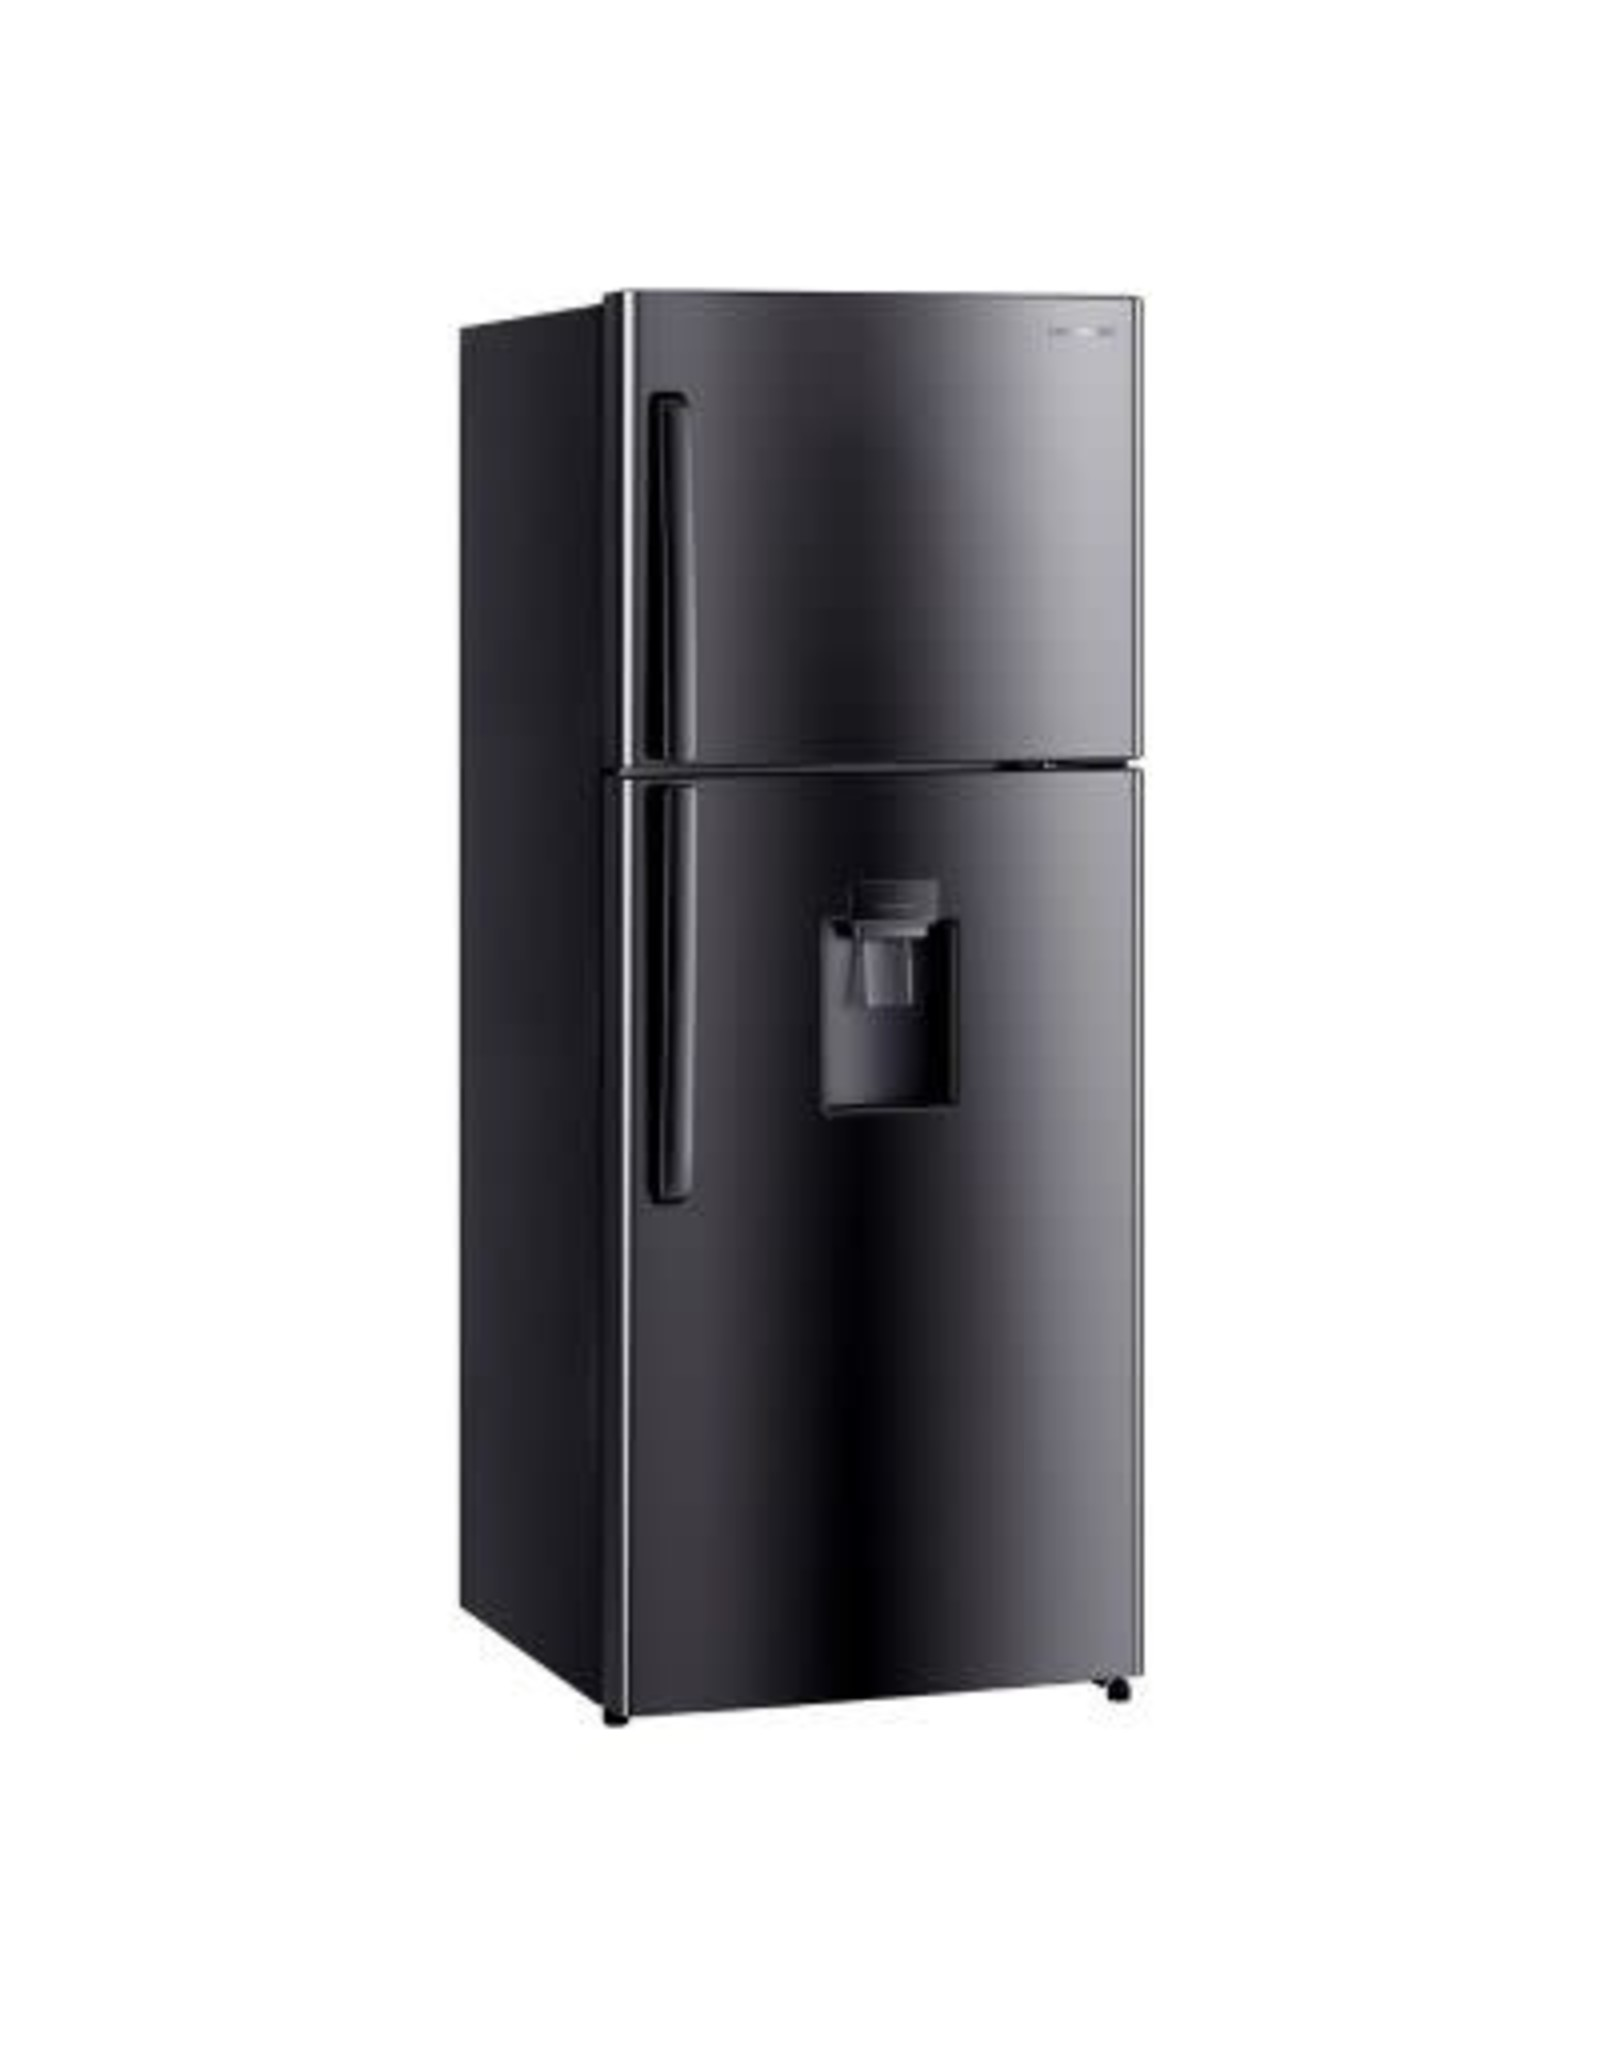 Daewoo Daewoo Refrigerator 17ft Black w/dispenser DFR-46940GJDX